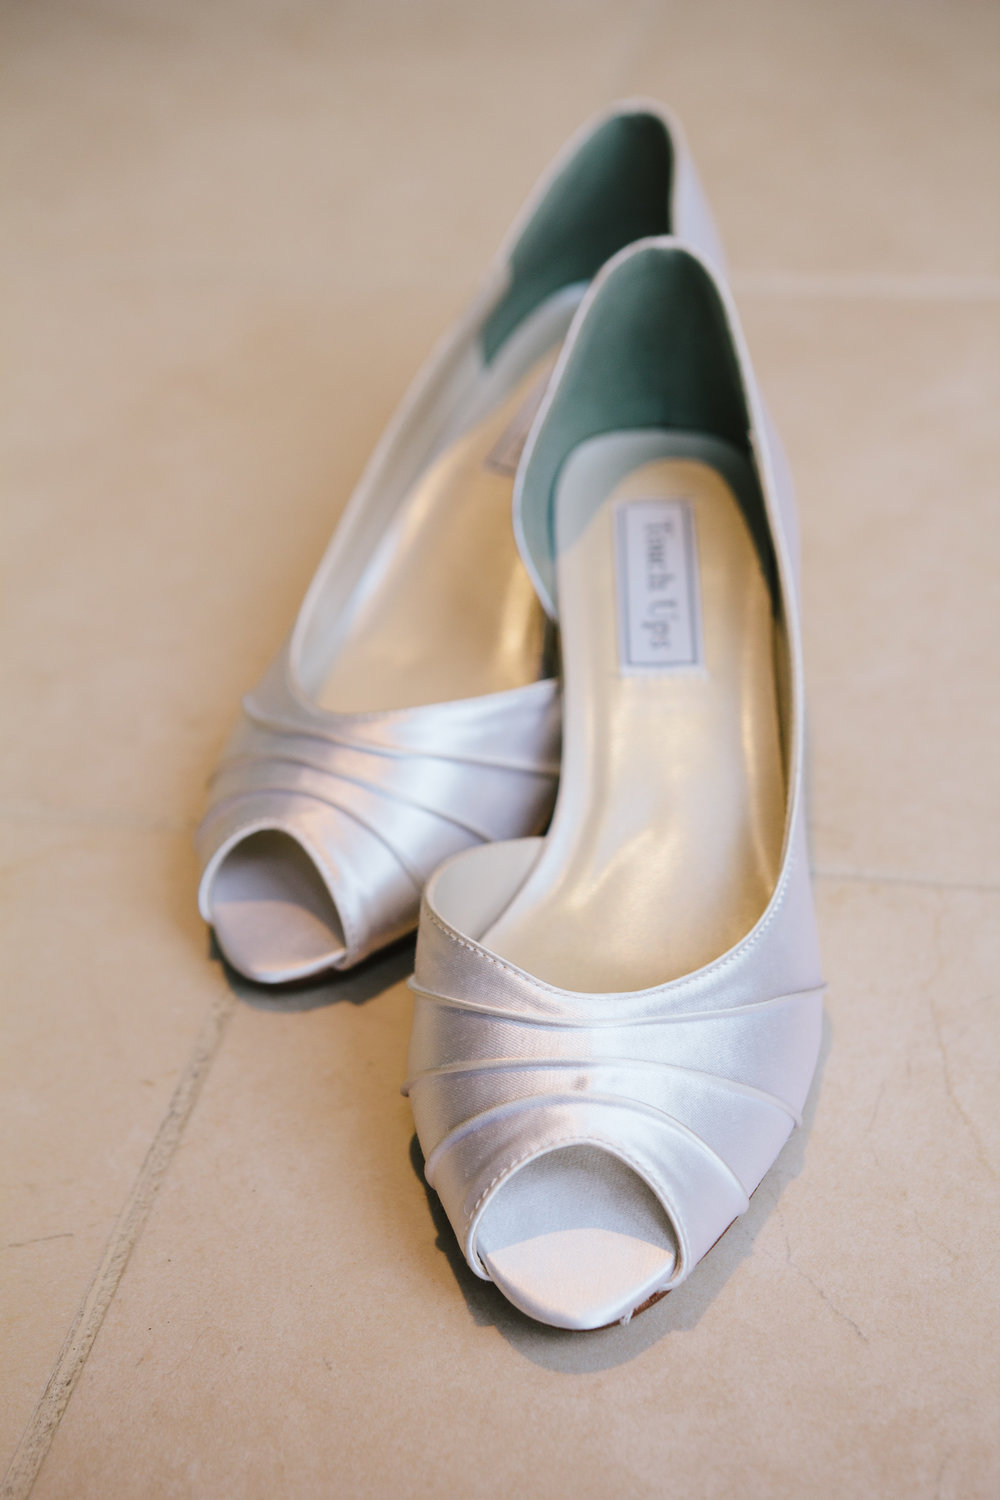 White Low Heel Wedding Shoes - A Simple Purple + White Wedding by From Britt's Eye View